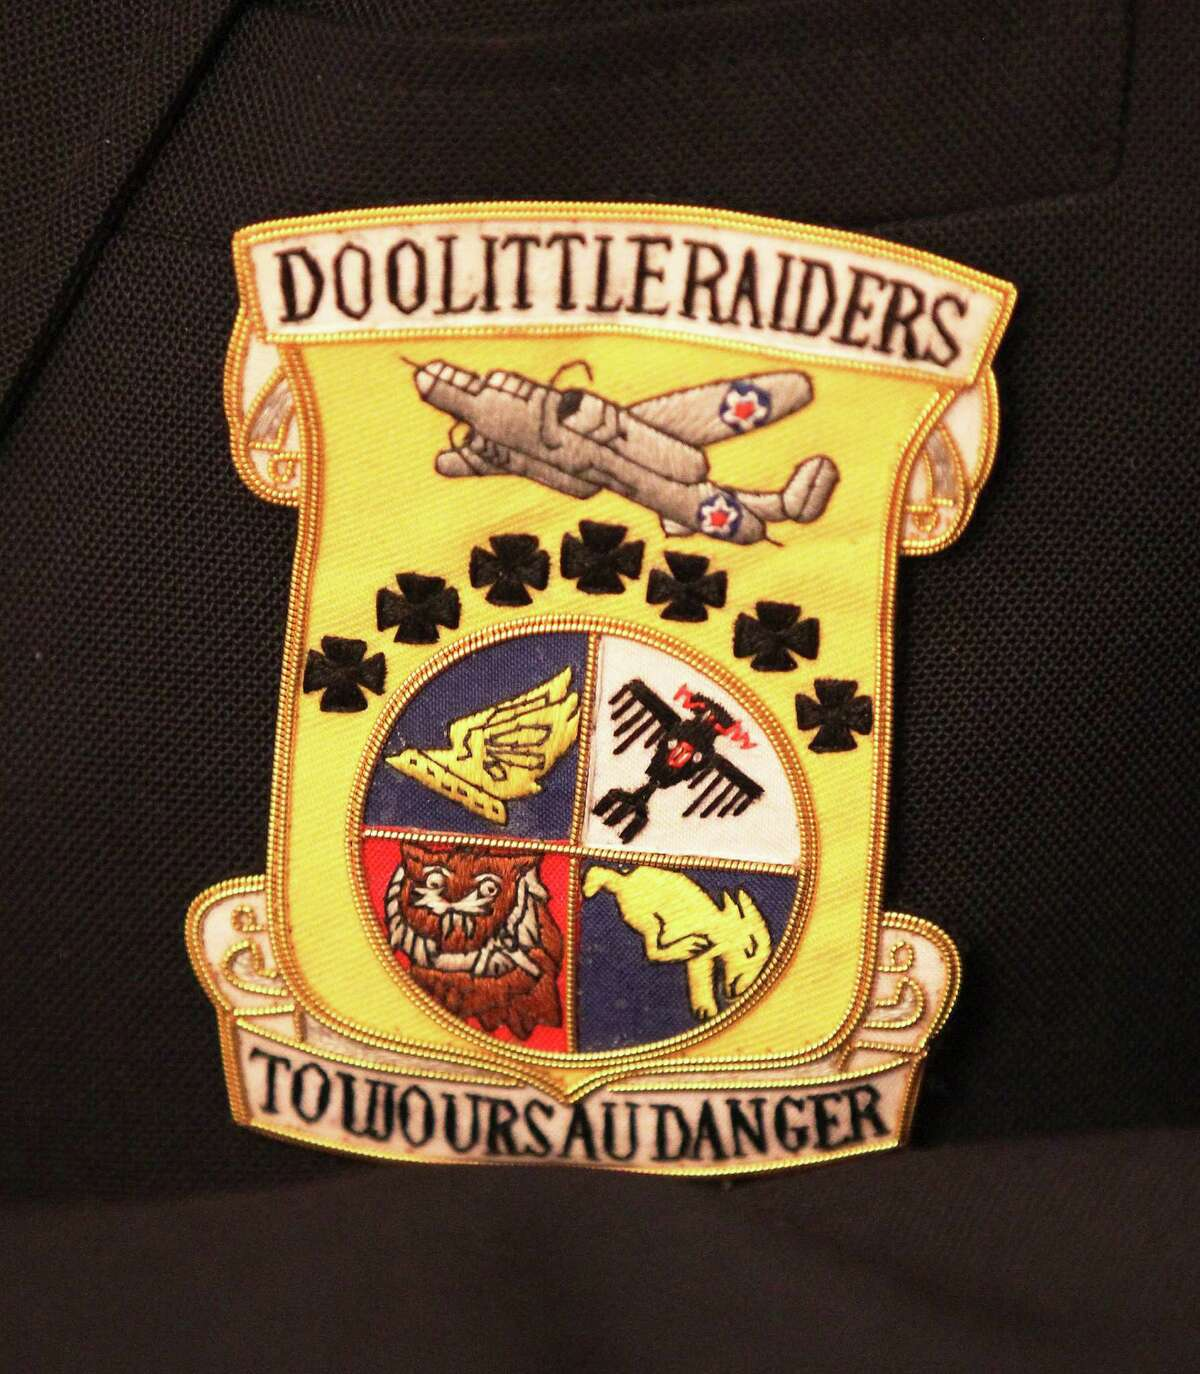 An emblem for the Doolittle Raiders worn on a jacket of retired Air Force Lt. Col. Richard